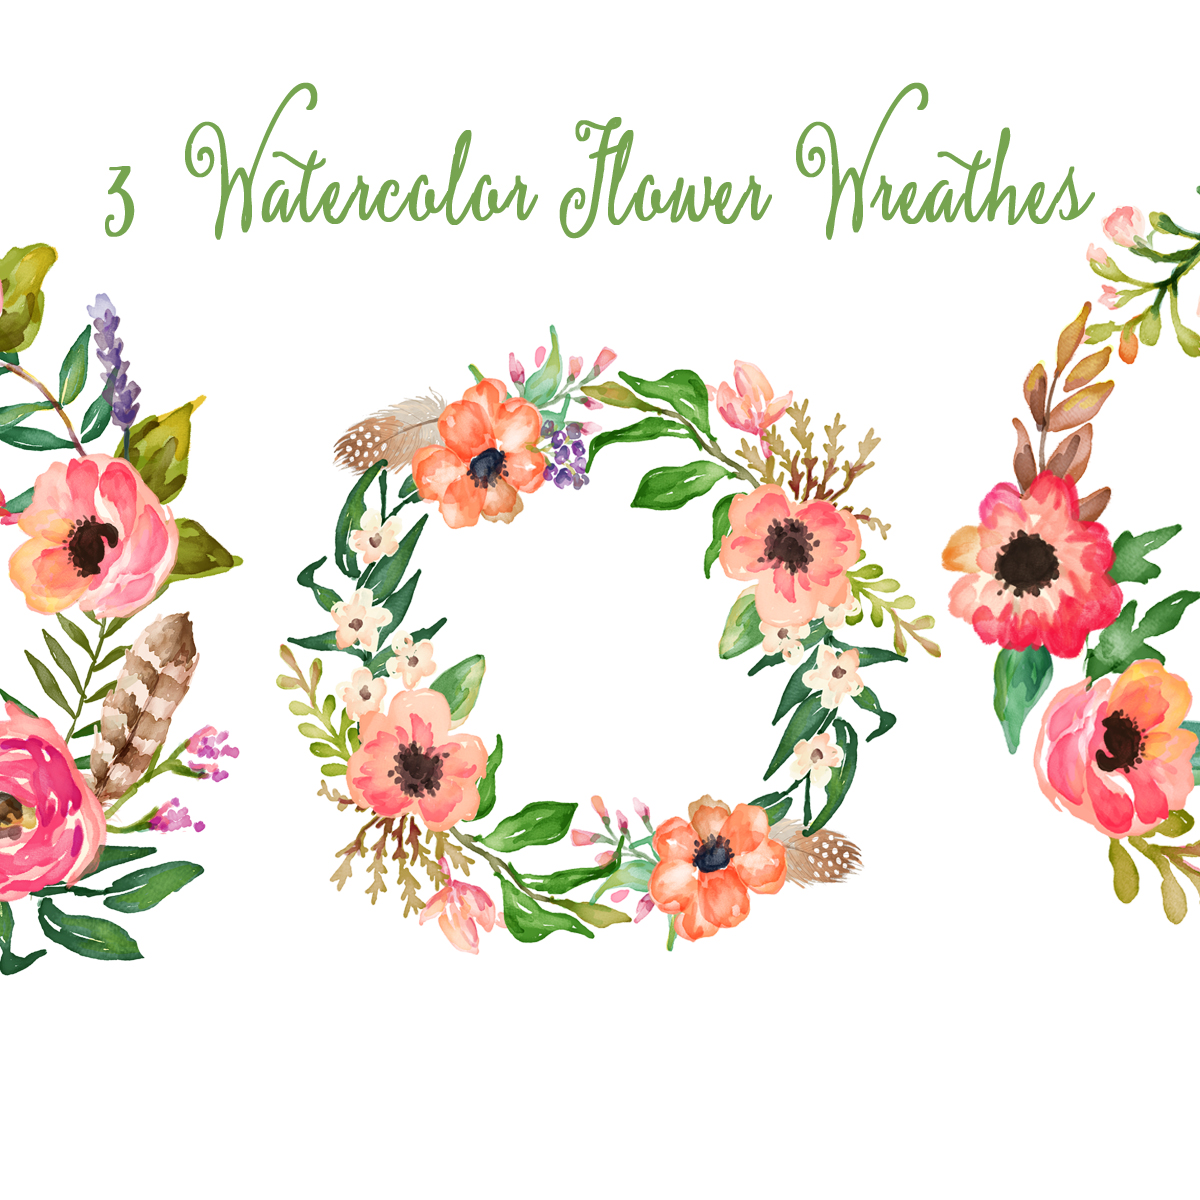 Watercolor hand painted flowers clipart clip art transparent Watercolor Hand Painted Floral Frames Clipart: clip art transparent